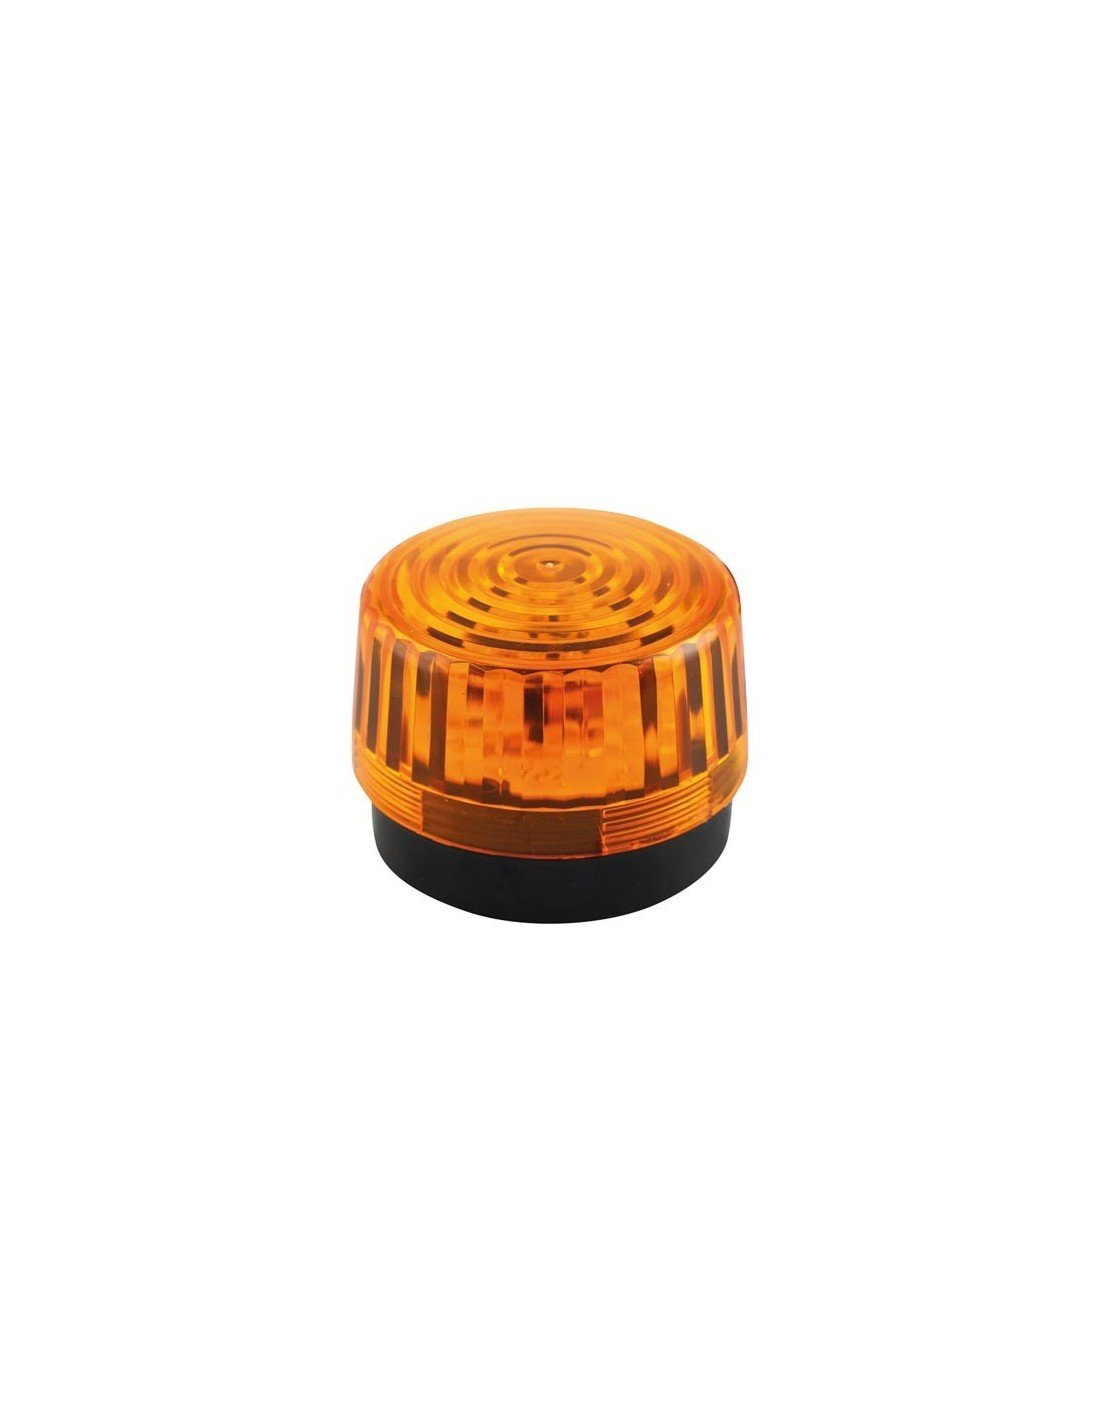 VELLEMAN - HAA100AN LED Blitzlicht, 12 VDC, Orange 640917